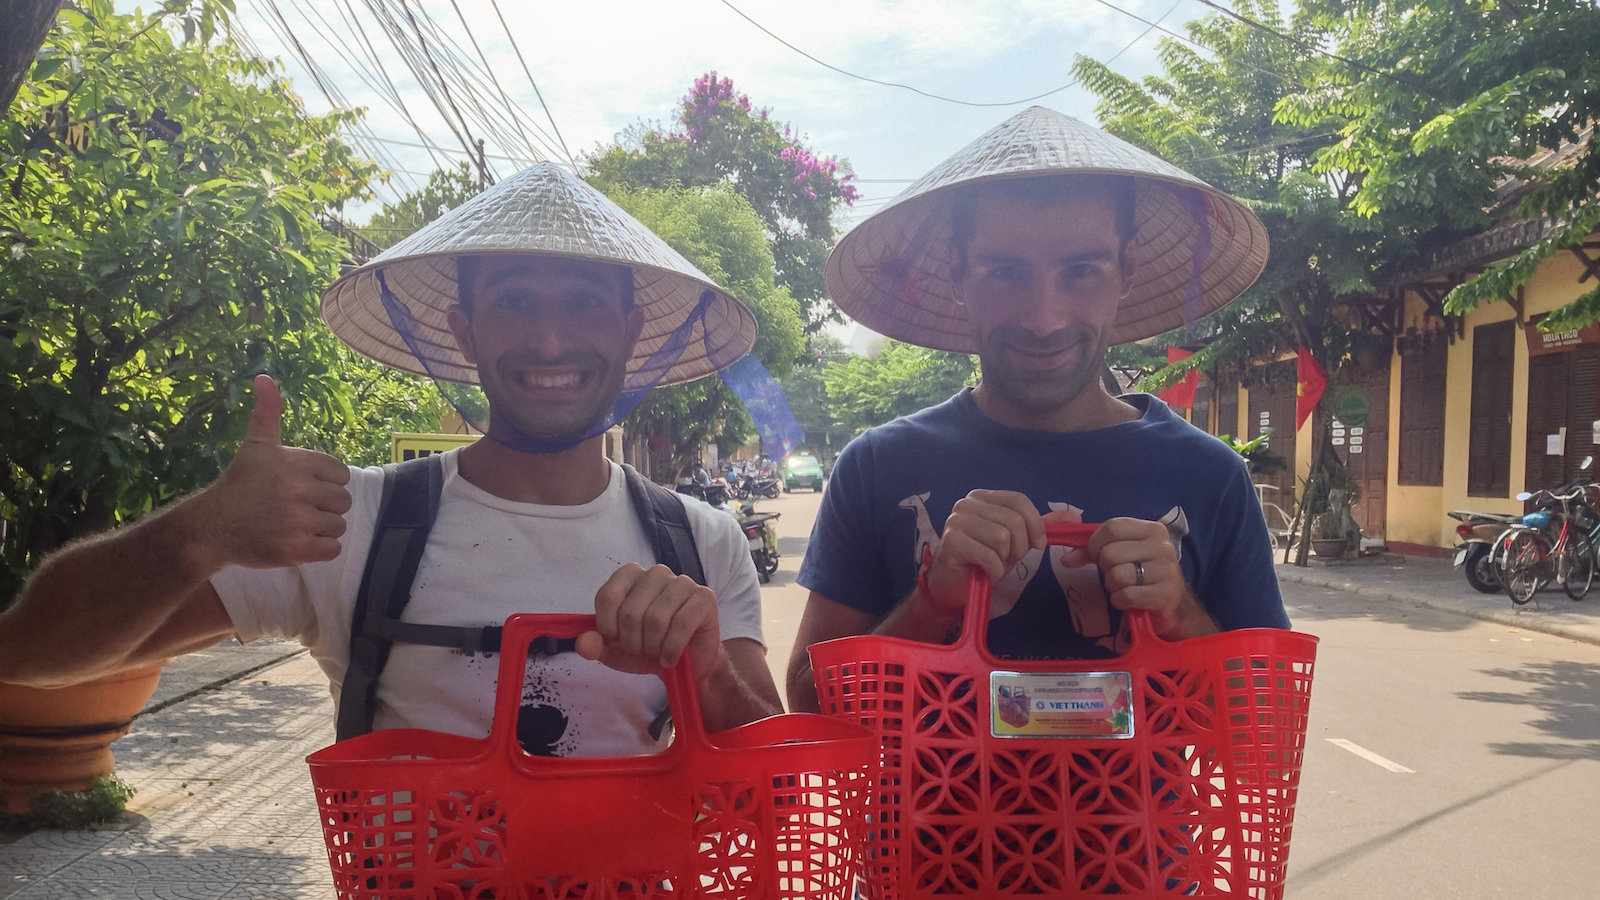 We found Vietnam very safe as gay travelers!